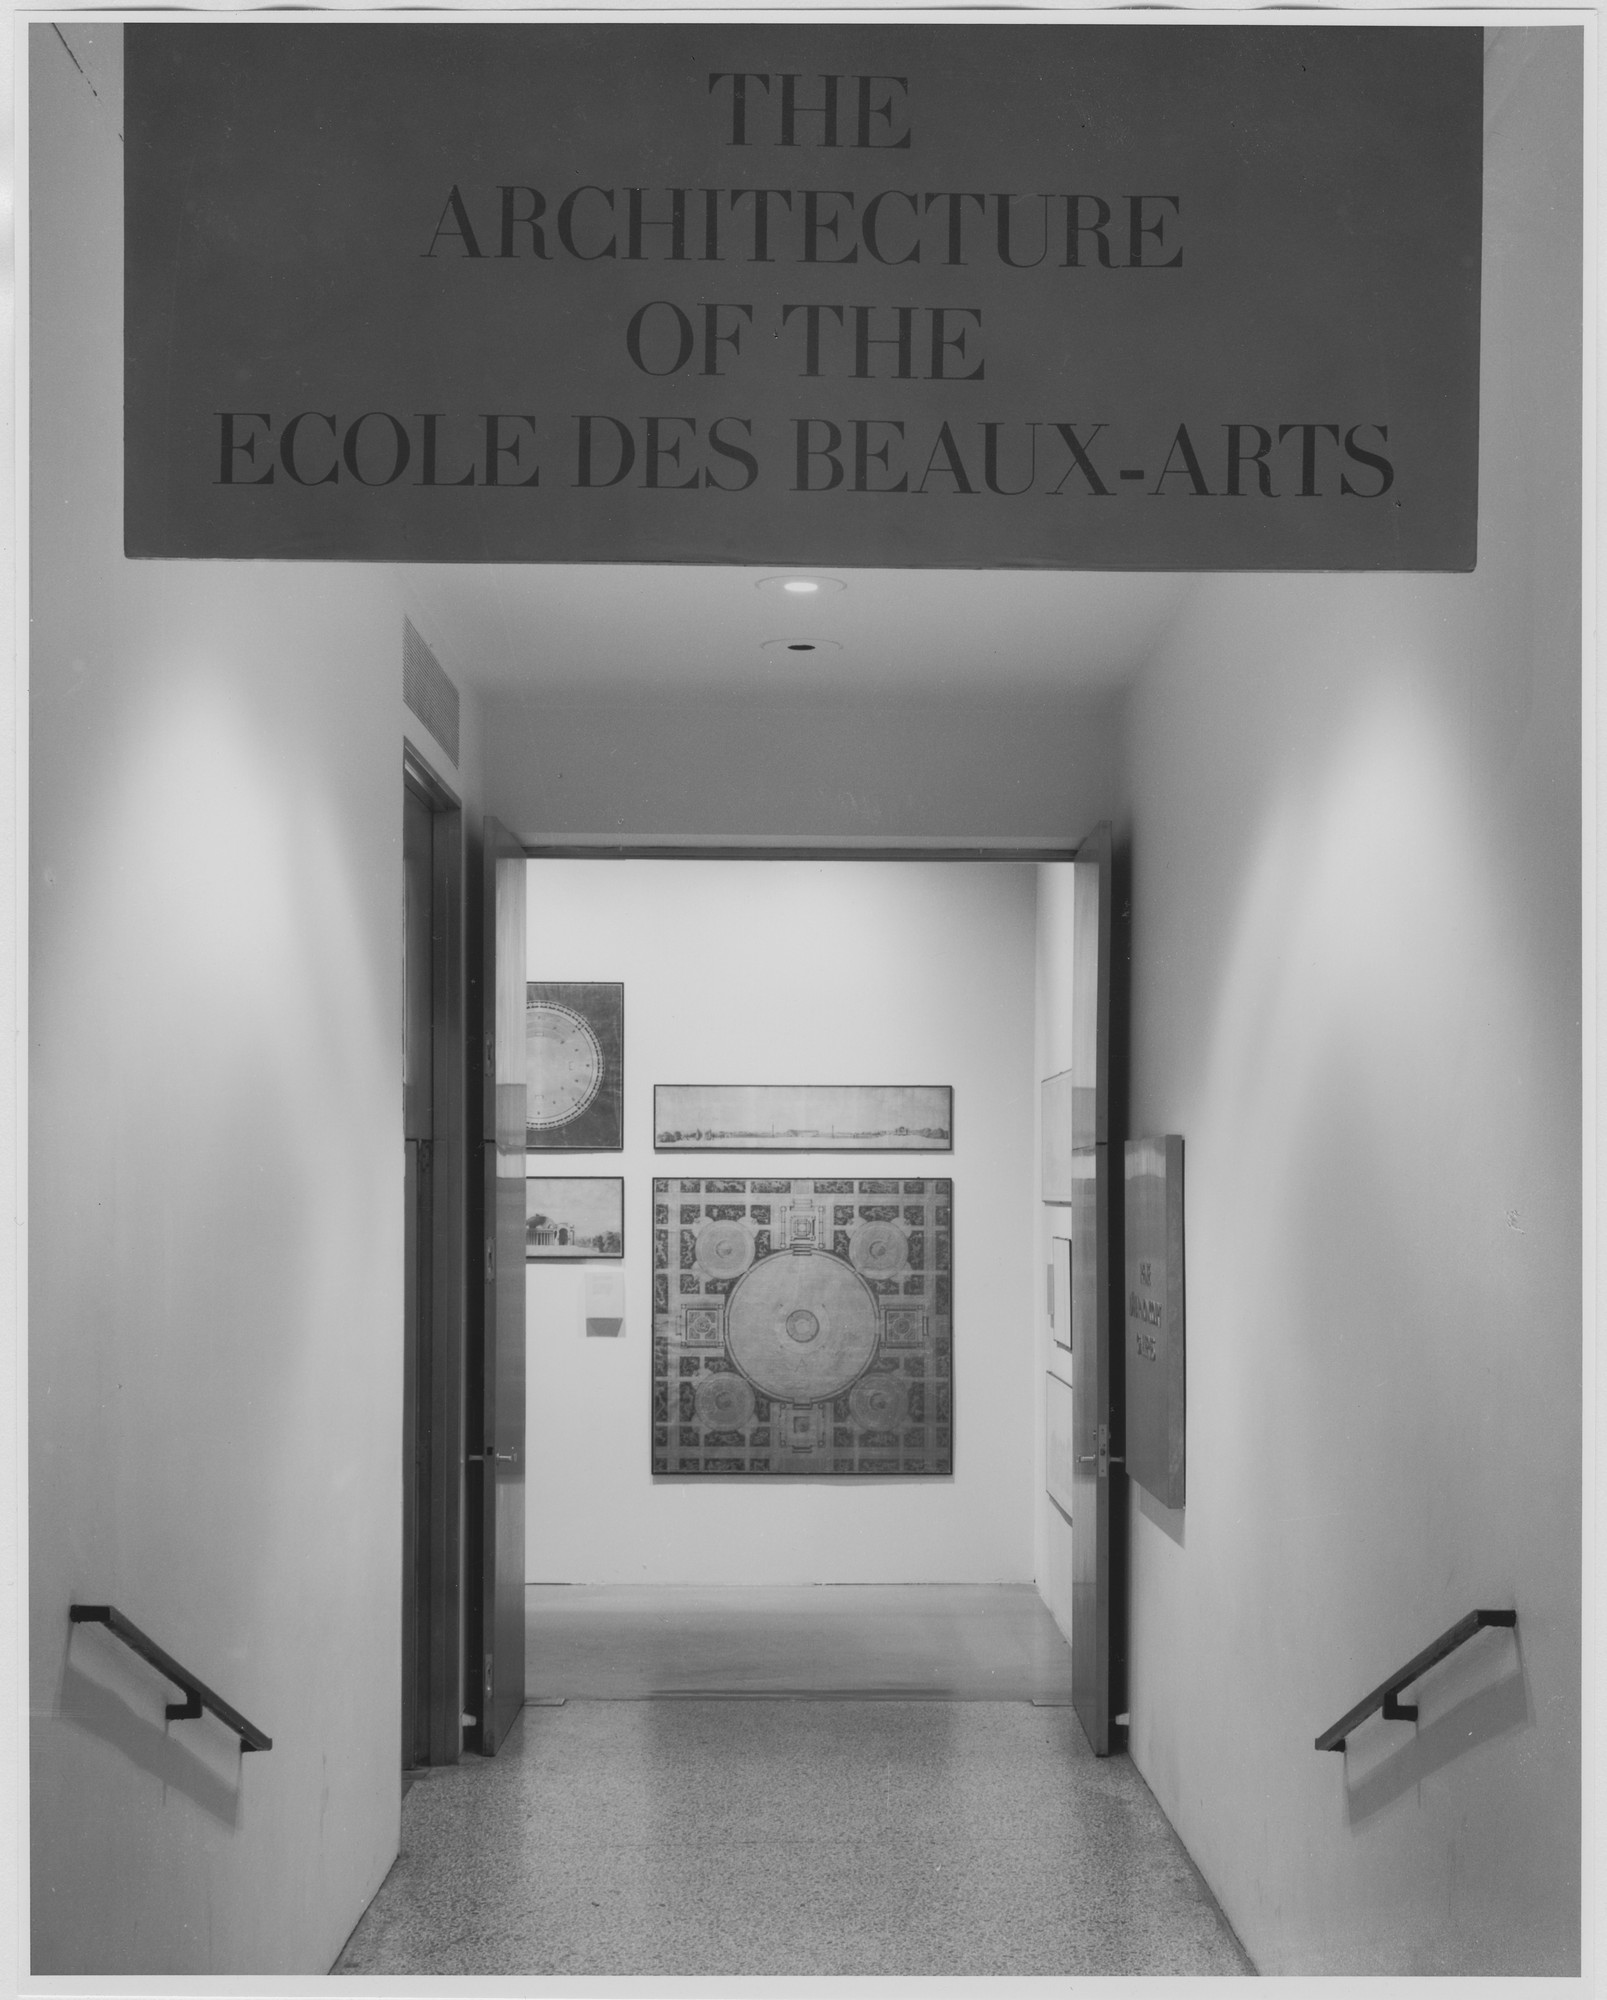 "Installation view of the exhibition, ""The Architecture of the Ecole des Beaux-Arts."" October 29, 1975–January 4, 1976. Photographic Archive. The Museum of Modern Art Archives, New York. IN1110.1. Photograph by David Allison."